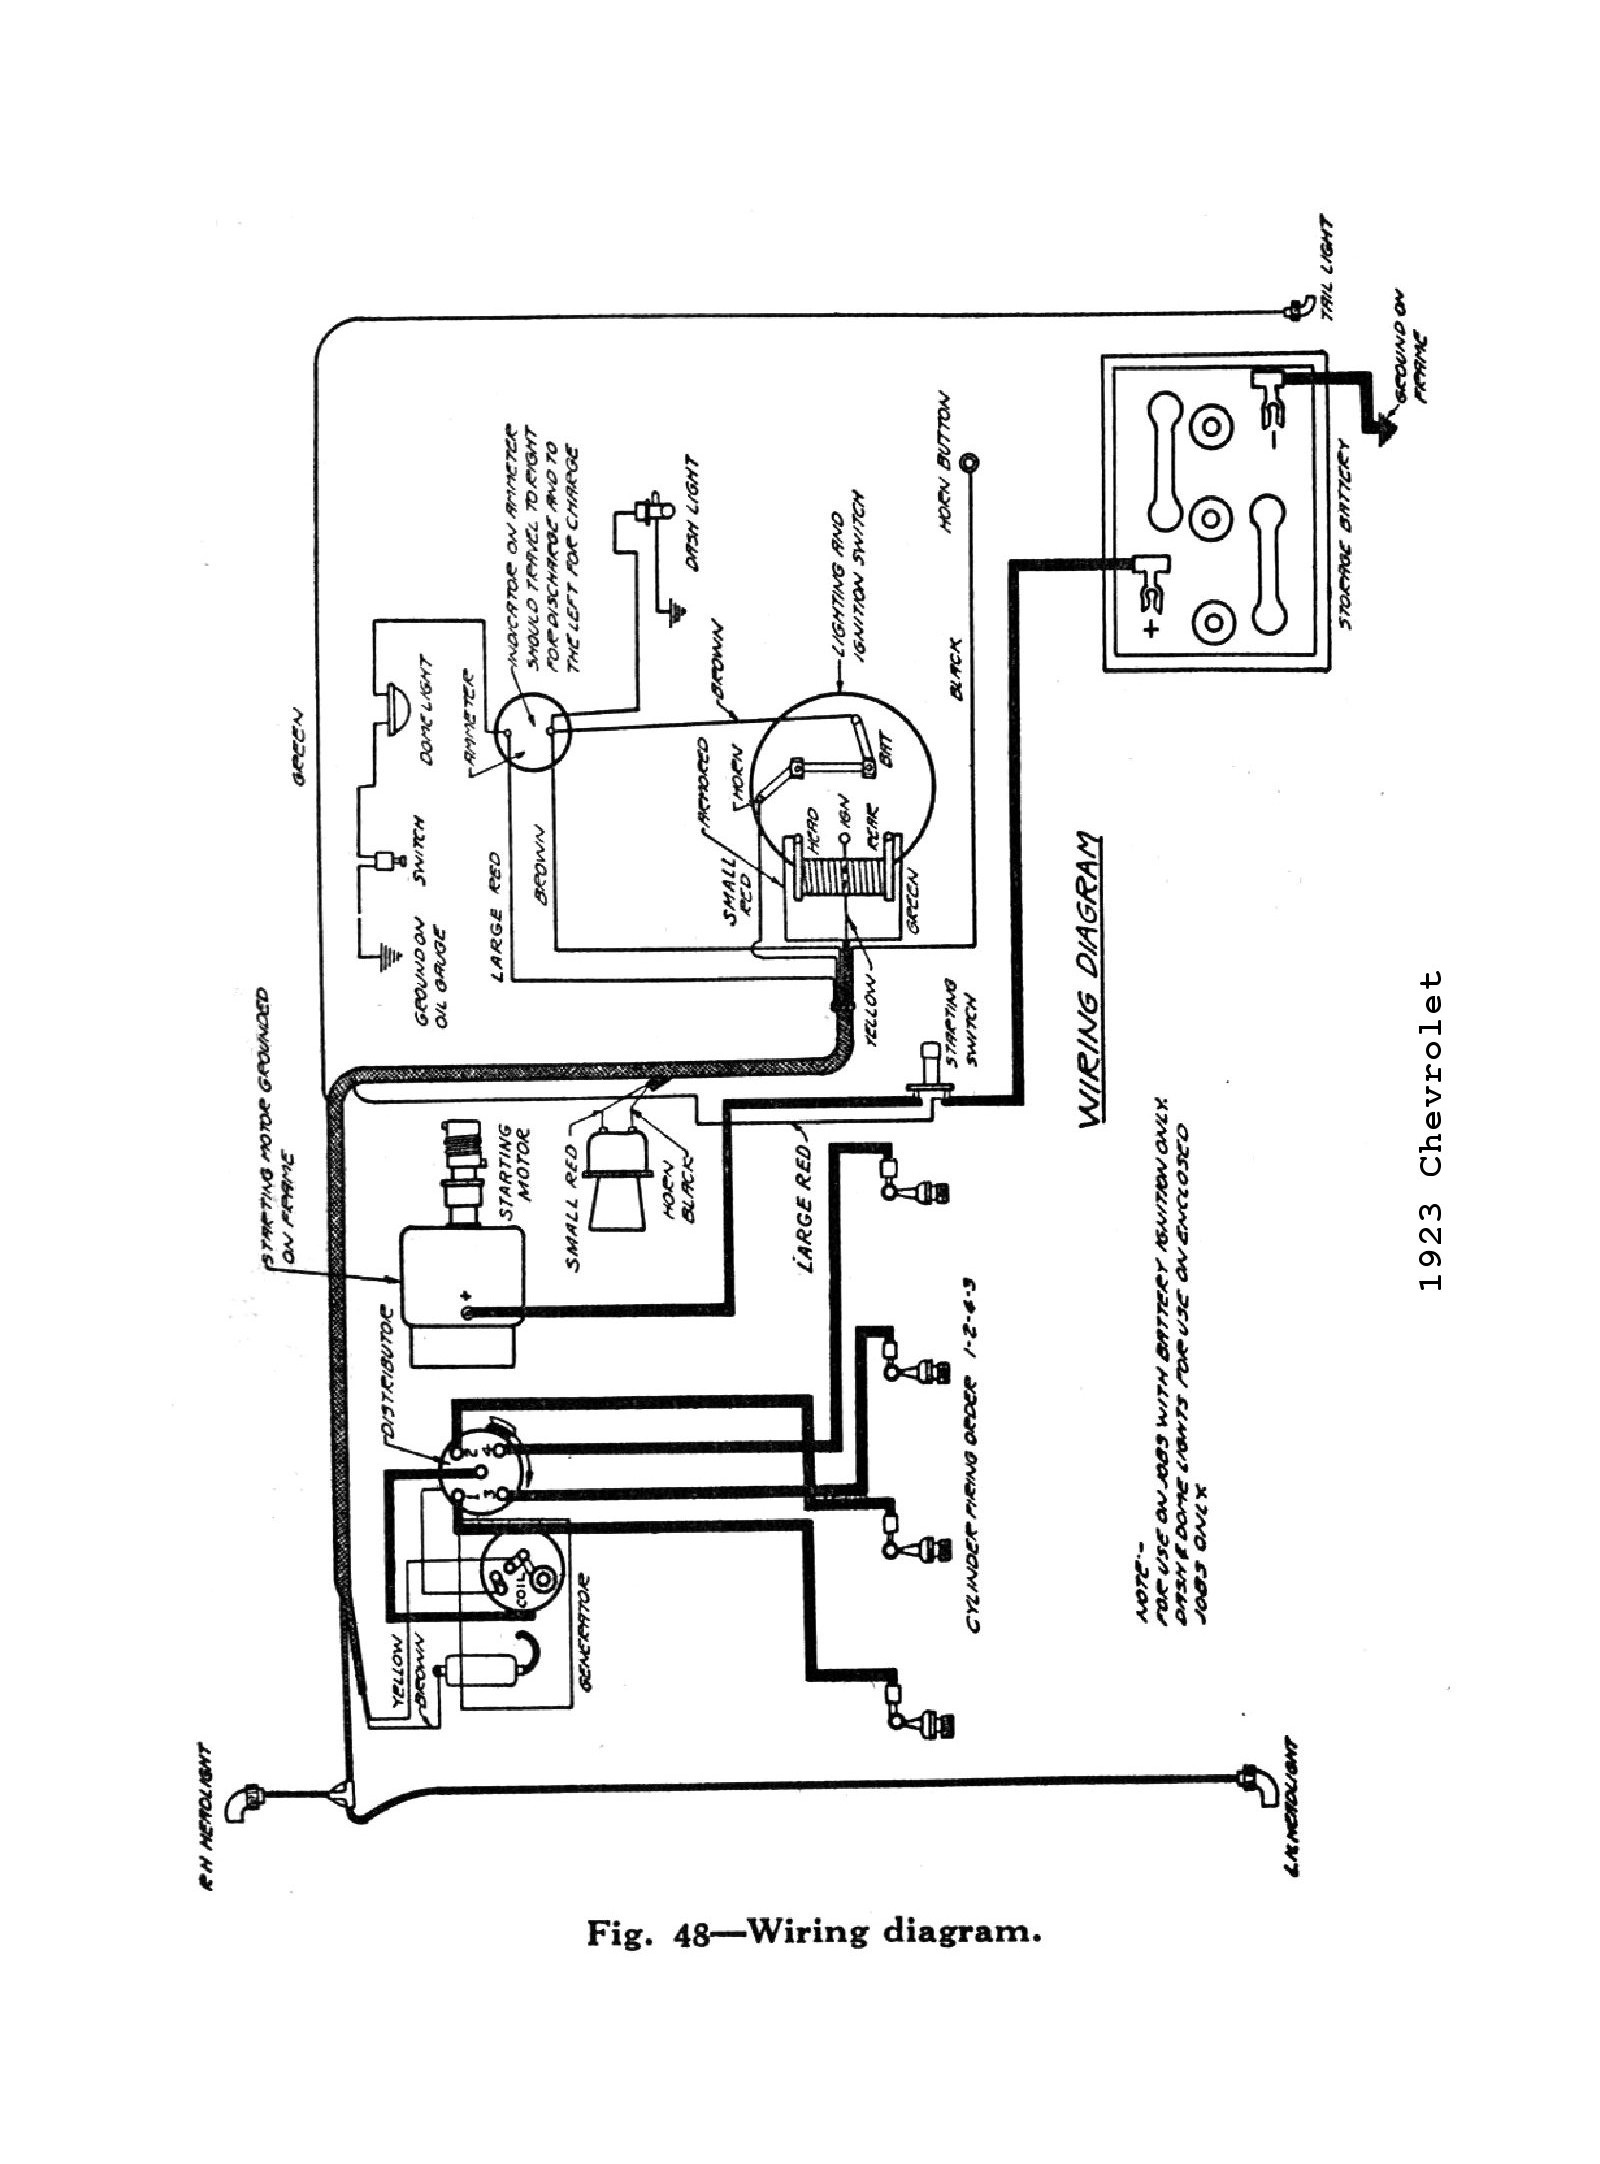 hight resolution of 1941 cadillac wiring diagram